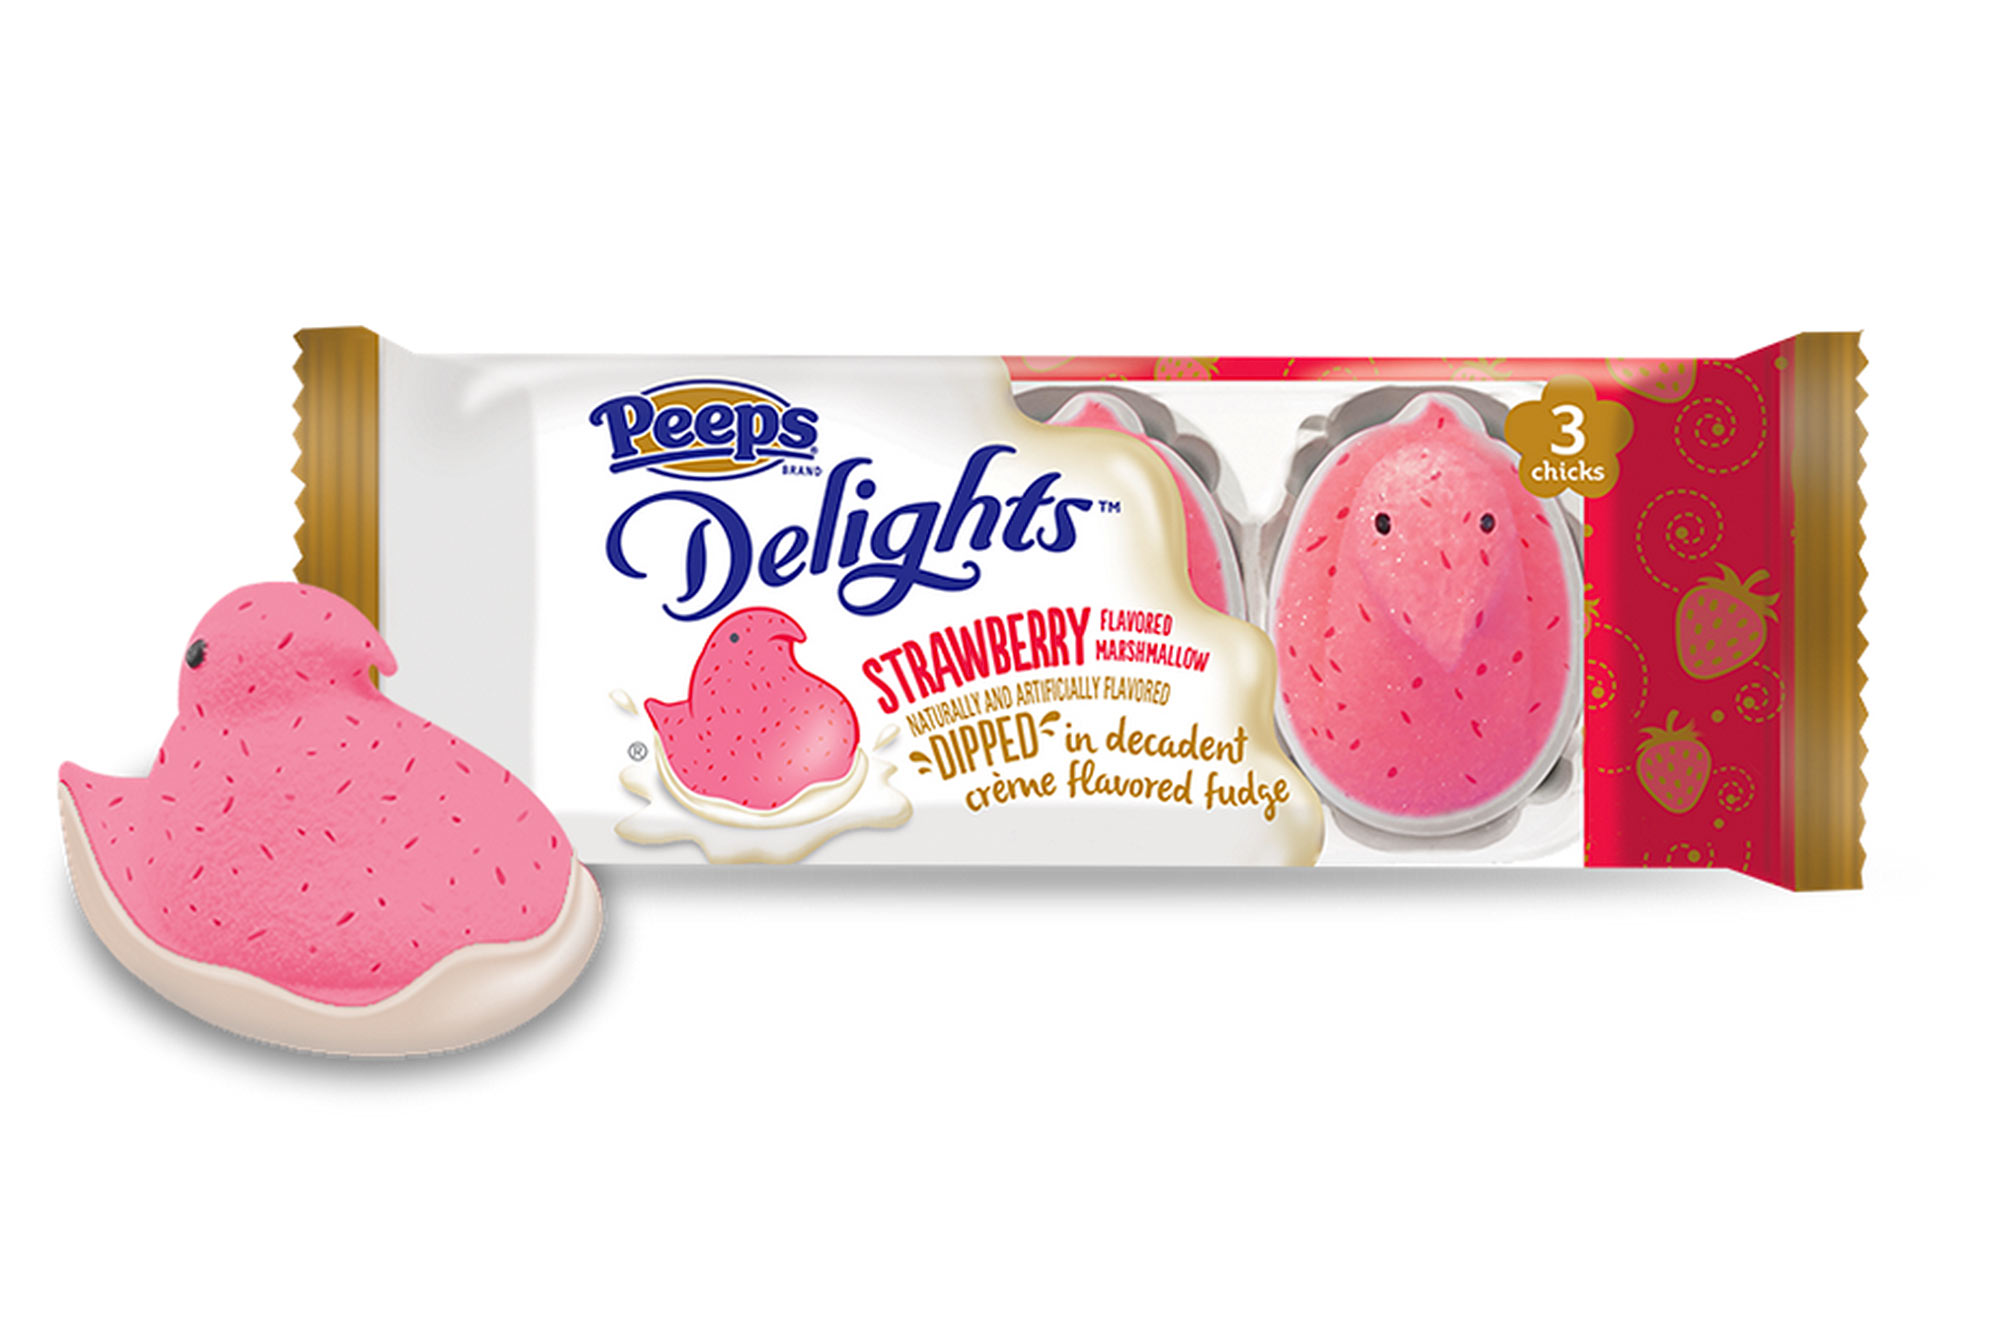 Peeps Delights Strawberry, Dipped in Crème Flavored Fudge